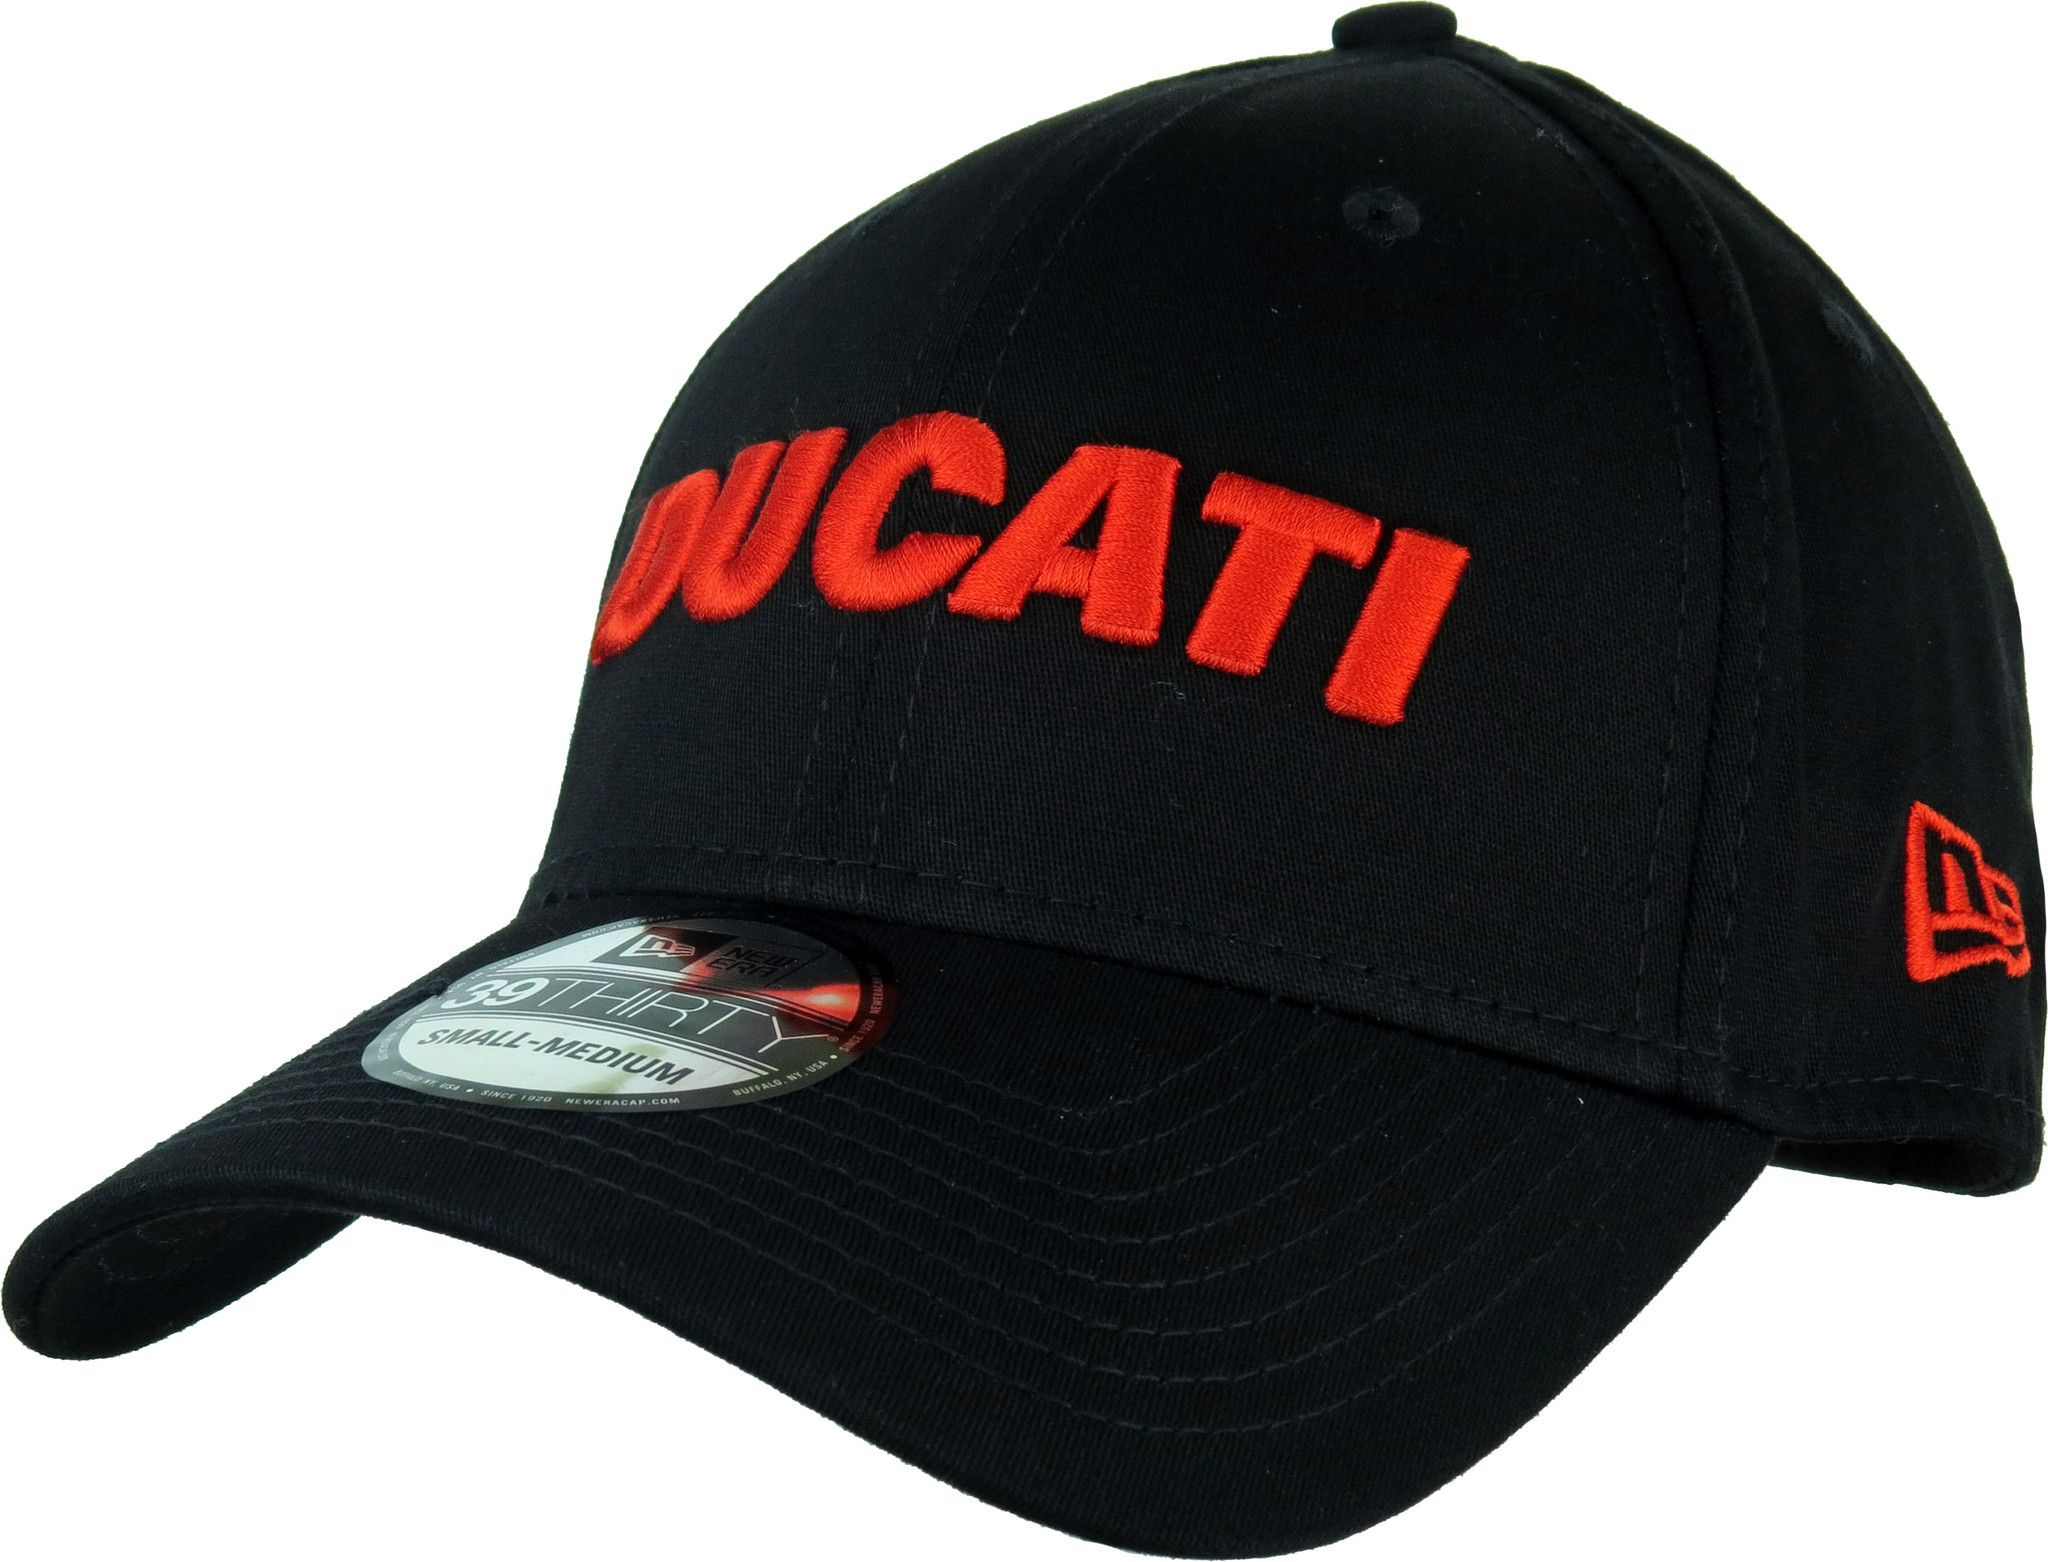 32c1cd8d Ducati New Era 39Thirty Stretch Fit Cap. Black, with the Red DUCATI front  title